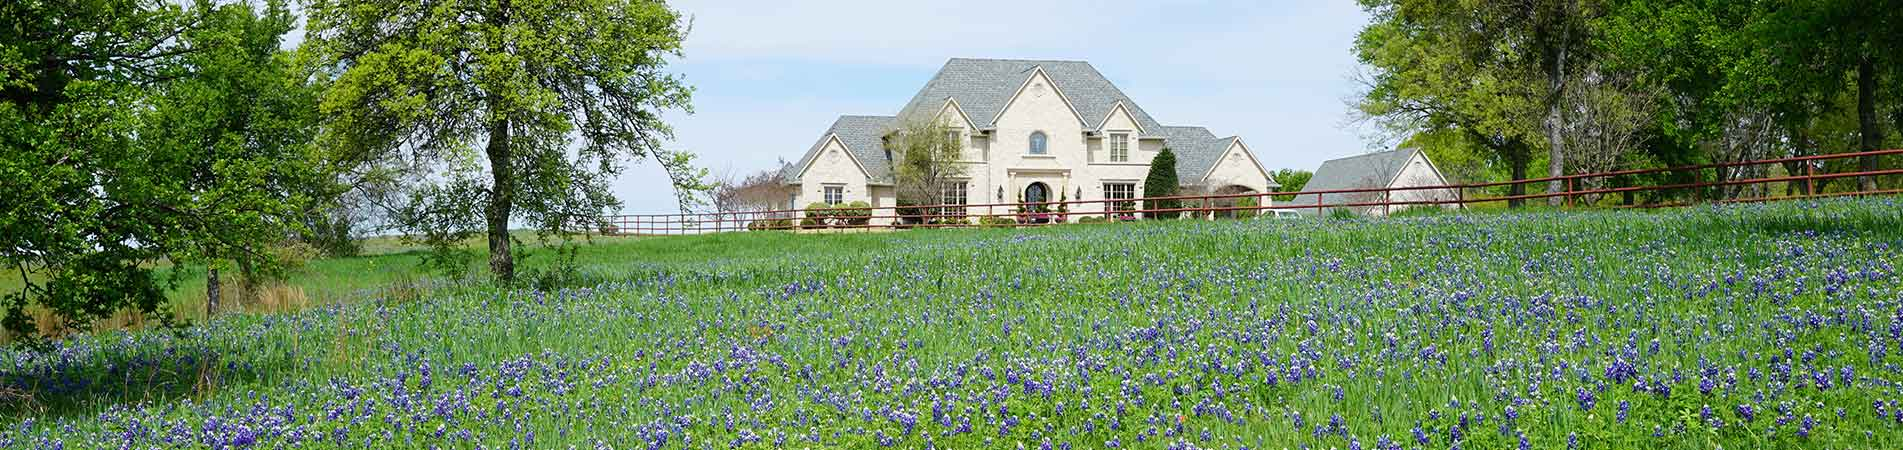 flowery field with mansion